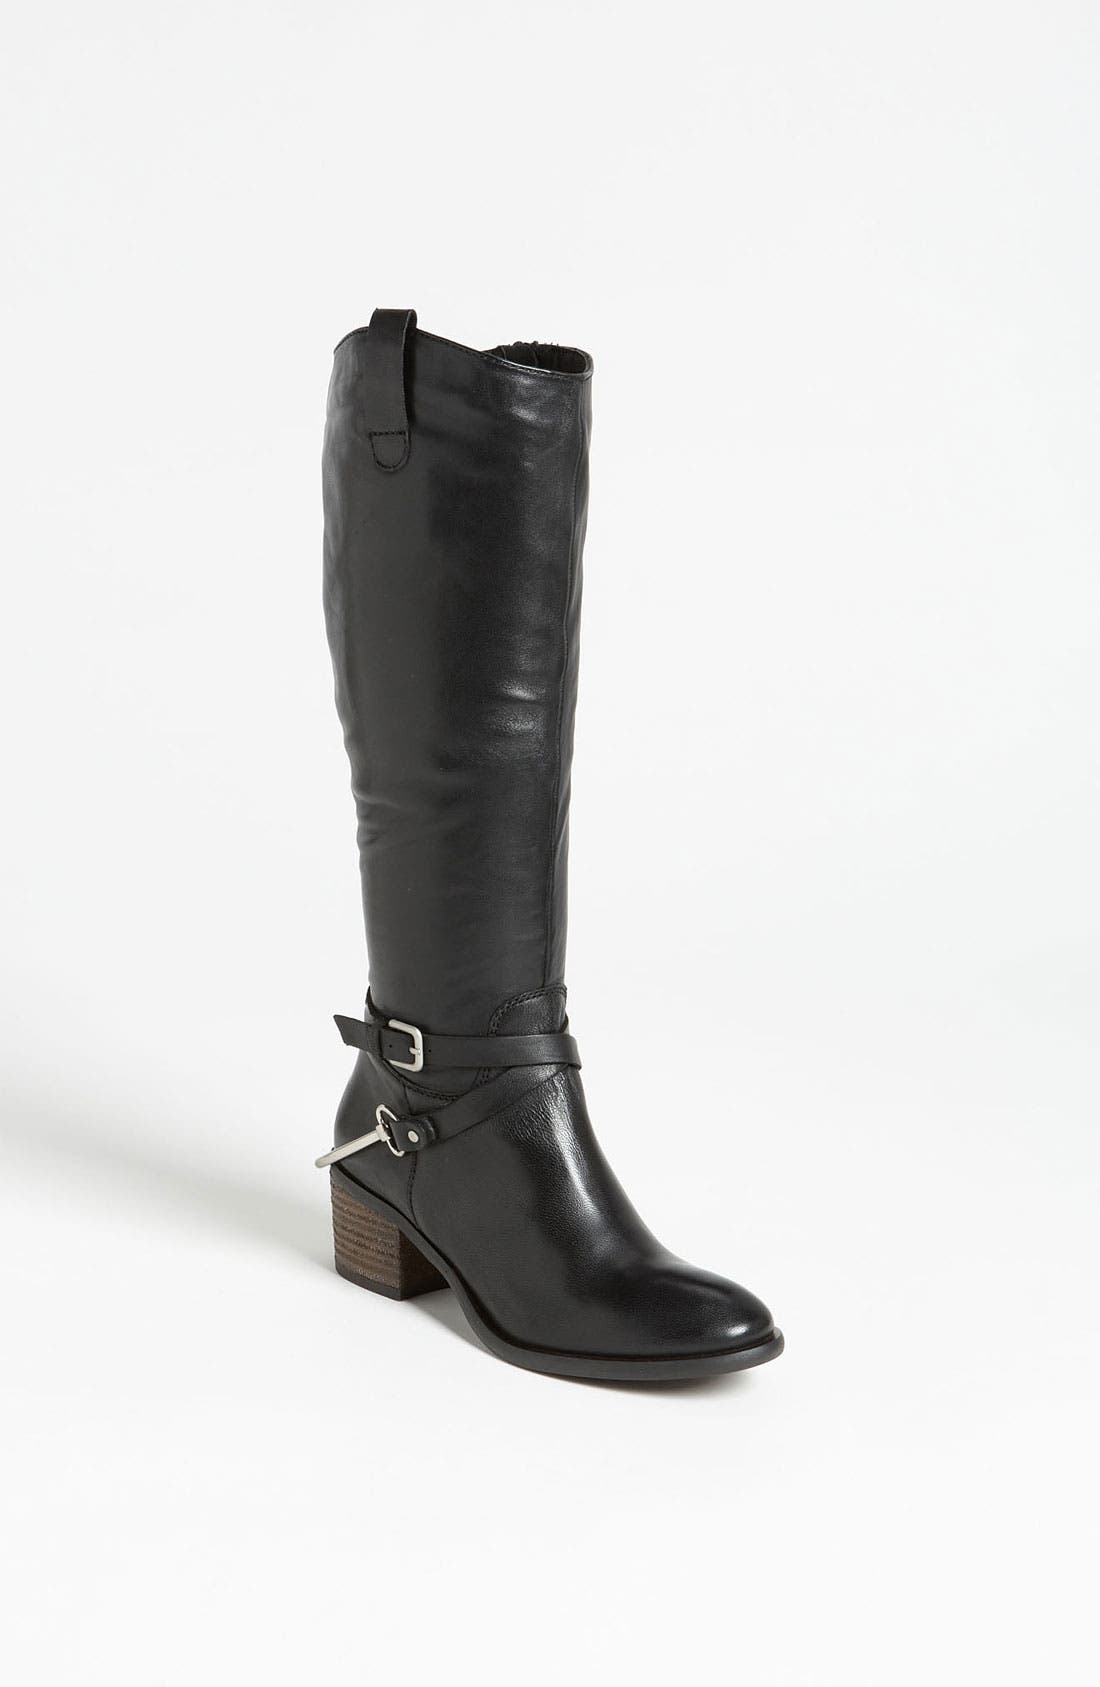 Main Image - Steven by Steve Madden 'Stirrup' Riding Boot